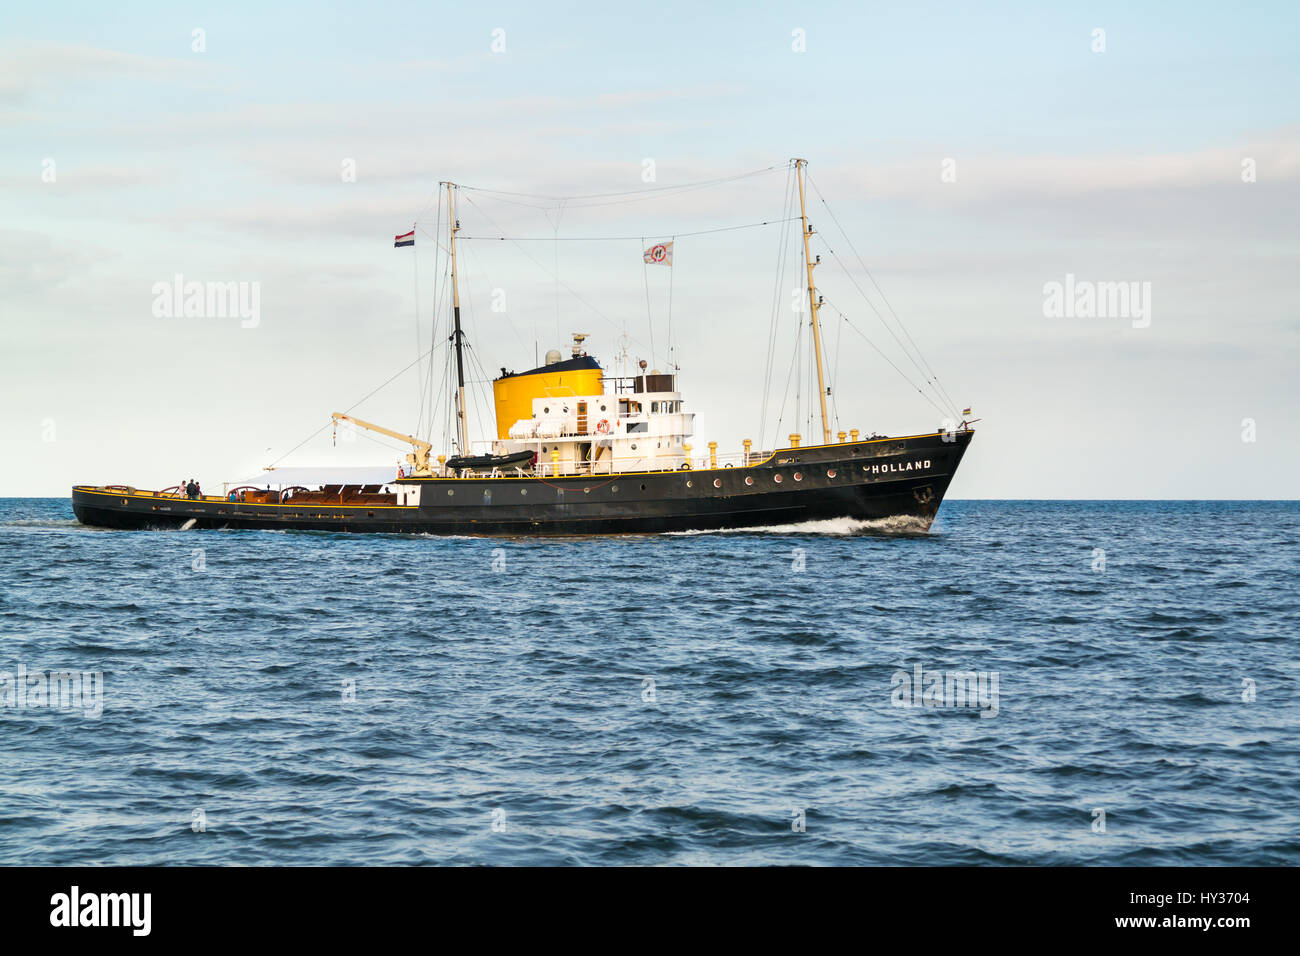 Seagoing Stock Photos & Seagoing Stock Images - Alamy